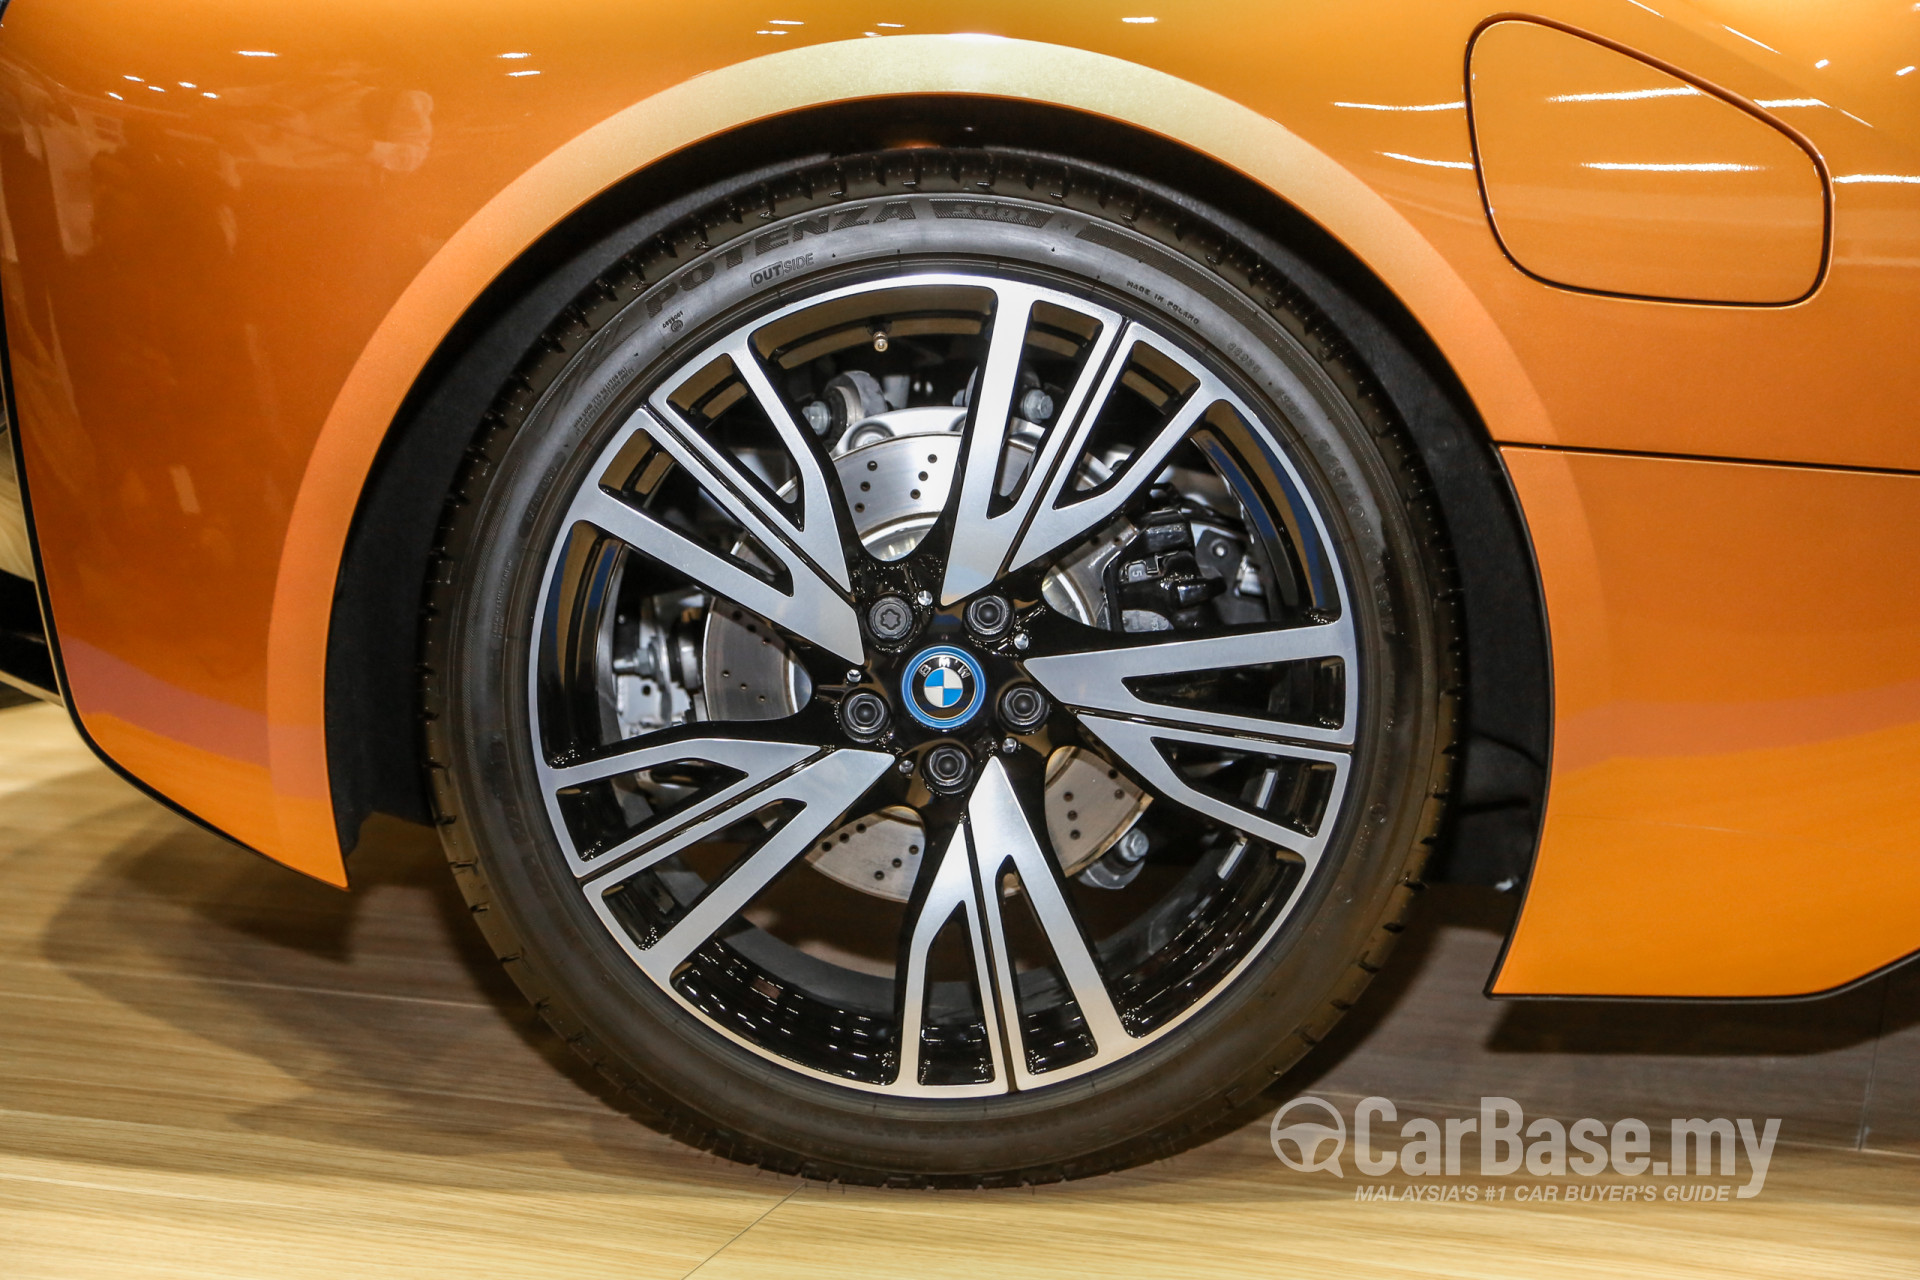 Bmw I8 Roadster I12 Lci 2018 Exterior Image 51399 In Malaysia